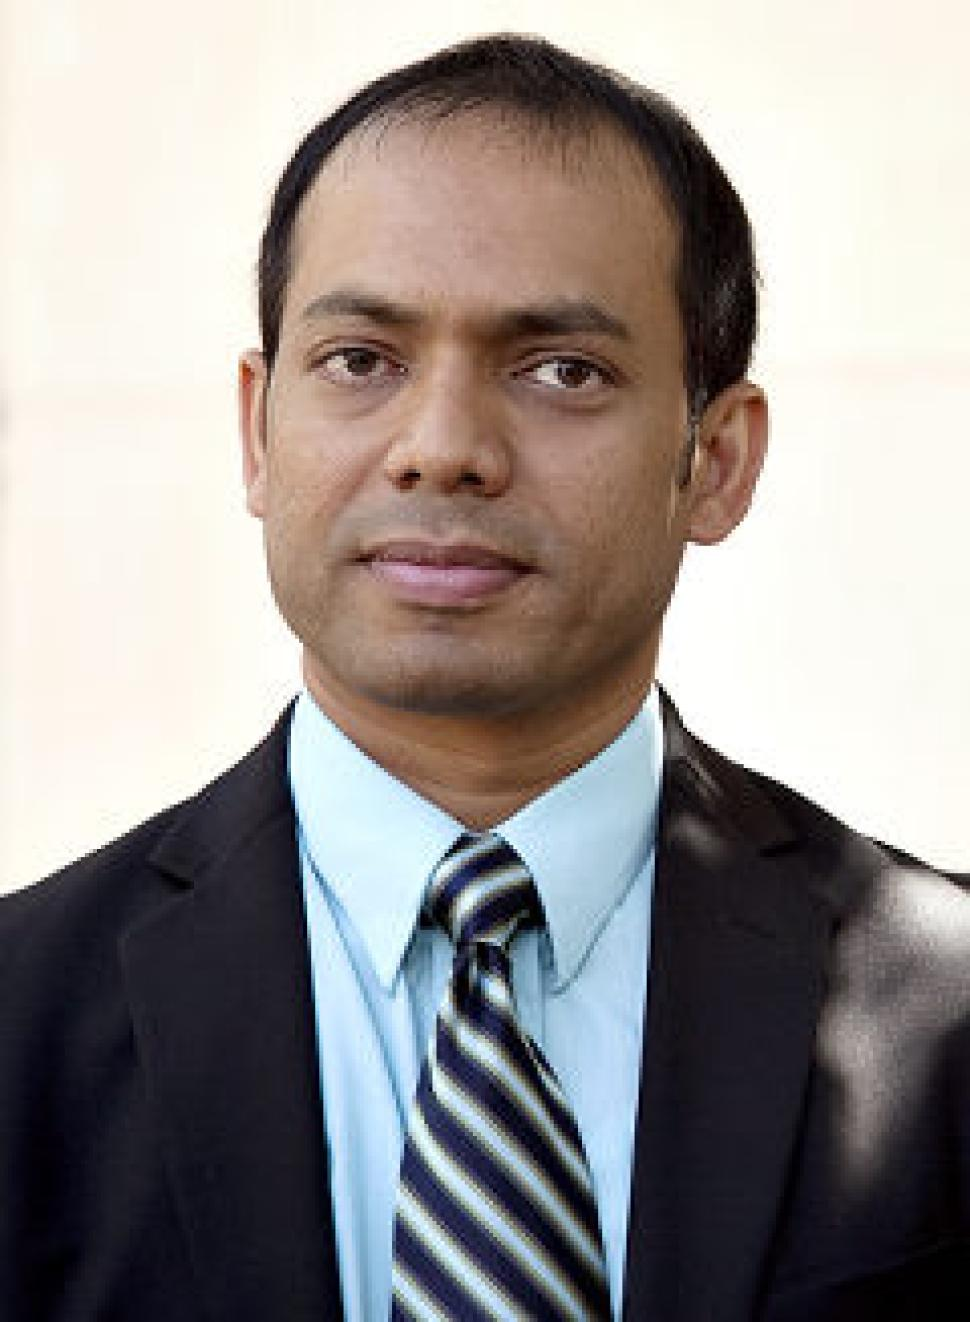 RAISUDDIN RAIS BHUIYAN (BANGLADESHI AMERICAN-TECHNOLOGY PROFESSIONAL IN DALLAS, TX.)